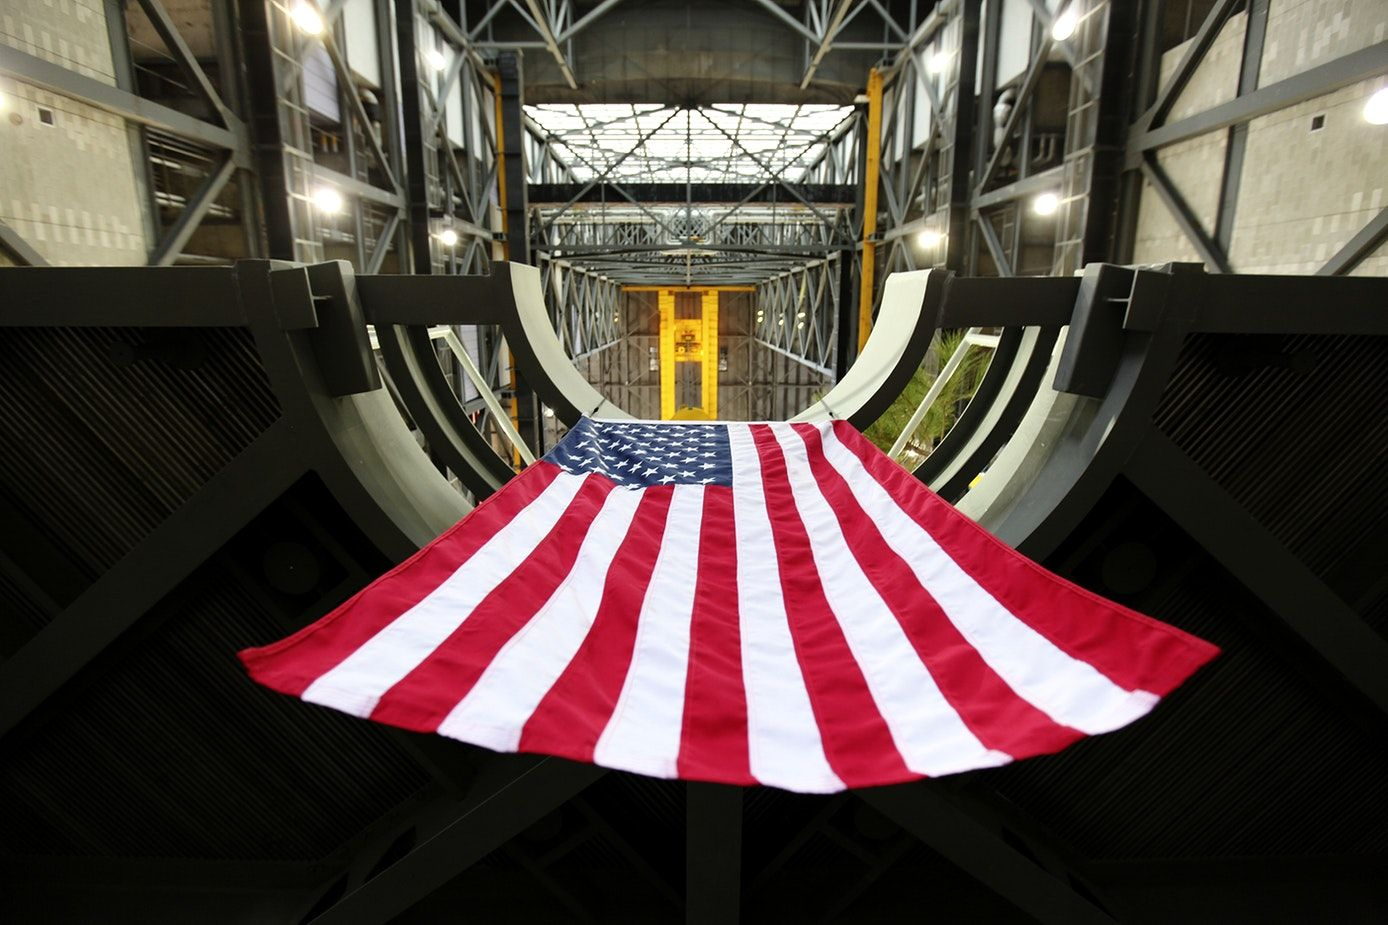 In a view from below, the American flag is in view hanging